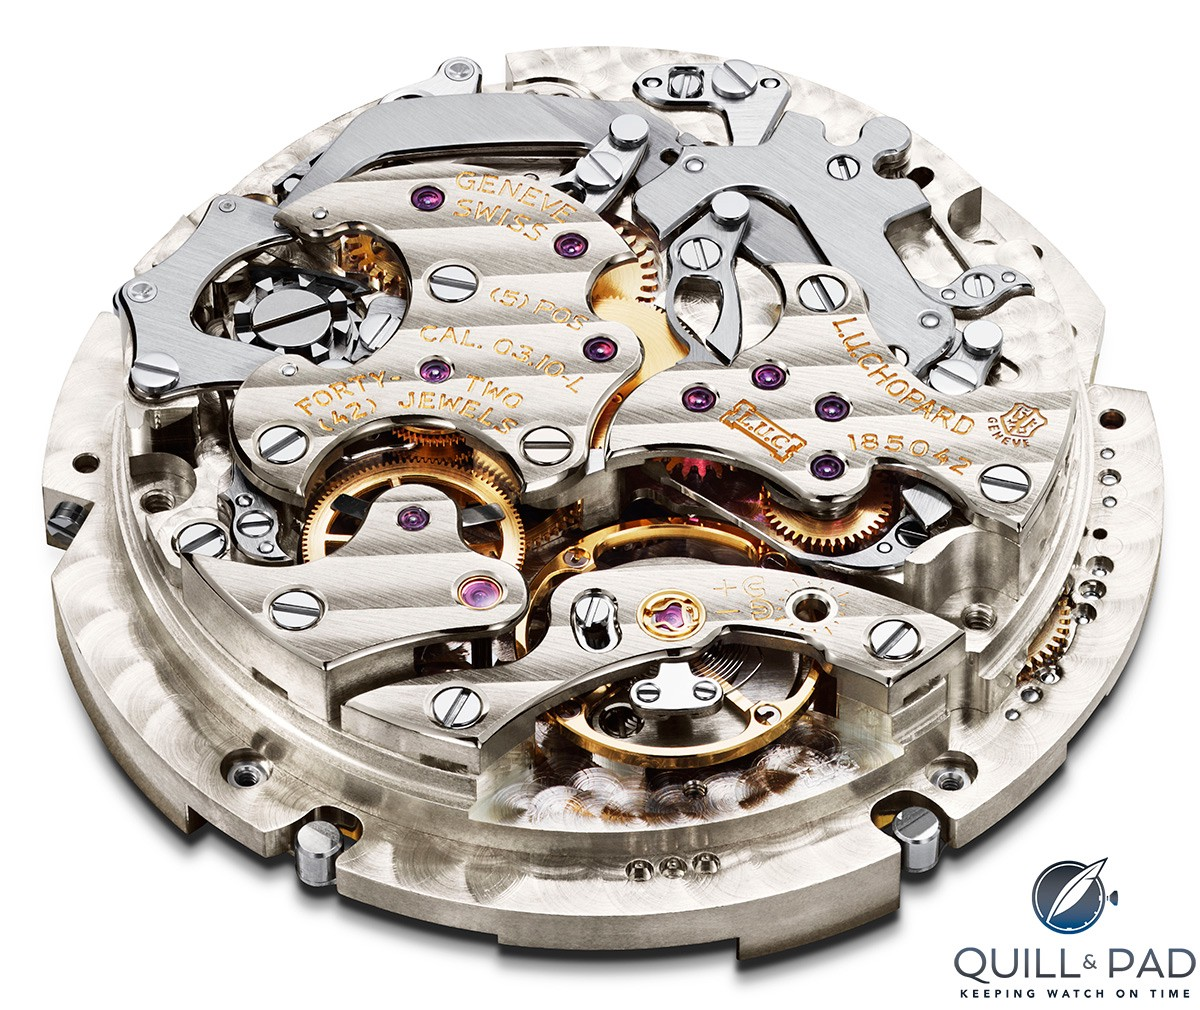 The Geneva Seal is visible at 3 o'clock on the movement of this beautifully finished Chopard L.U.C. Perpetual Chrono